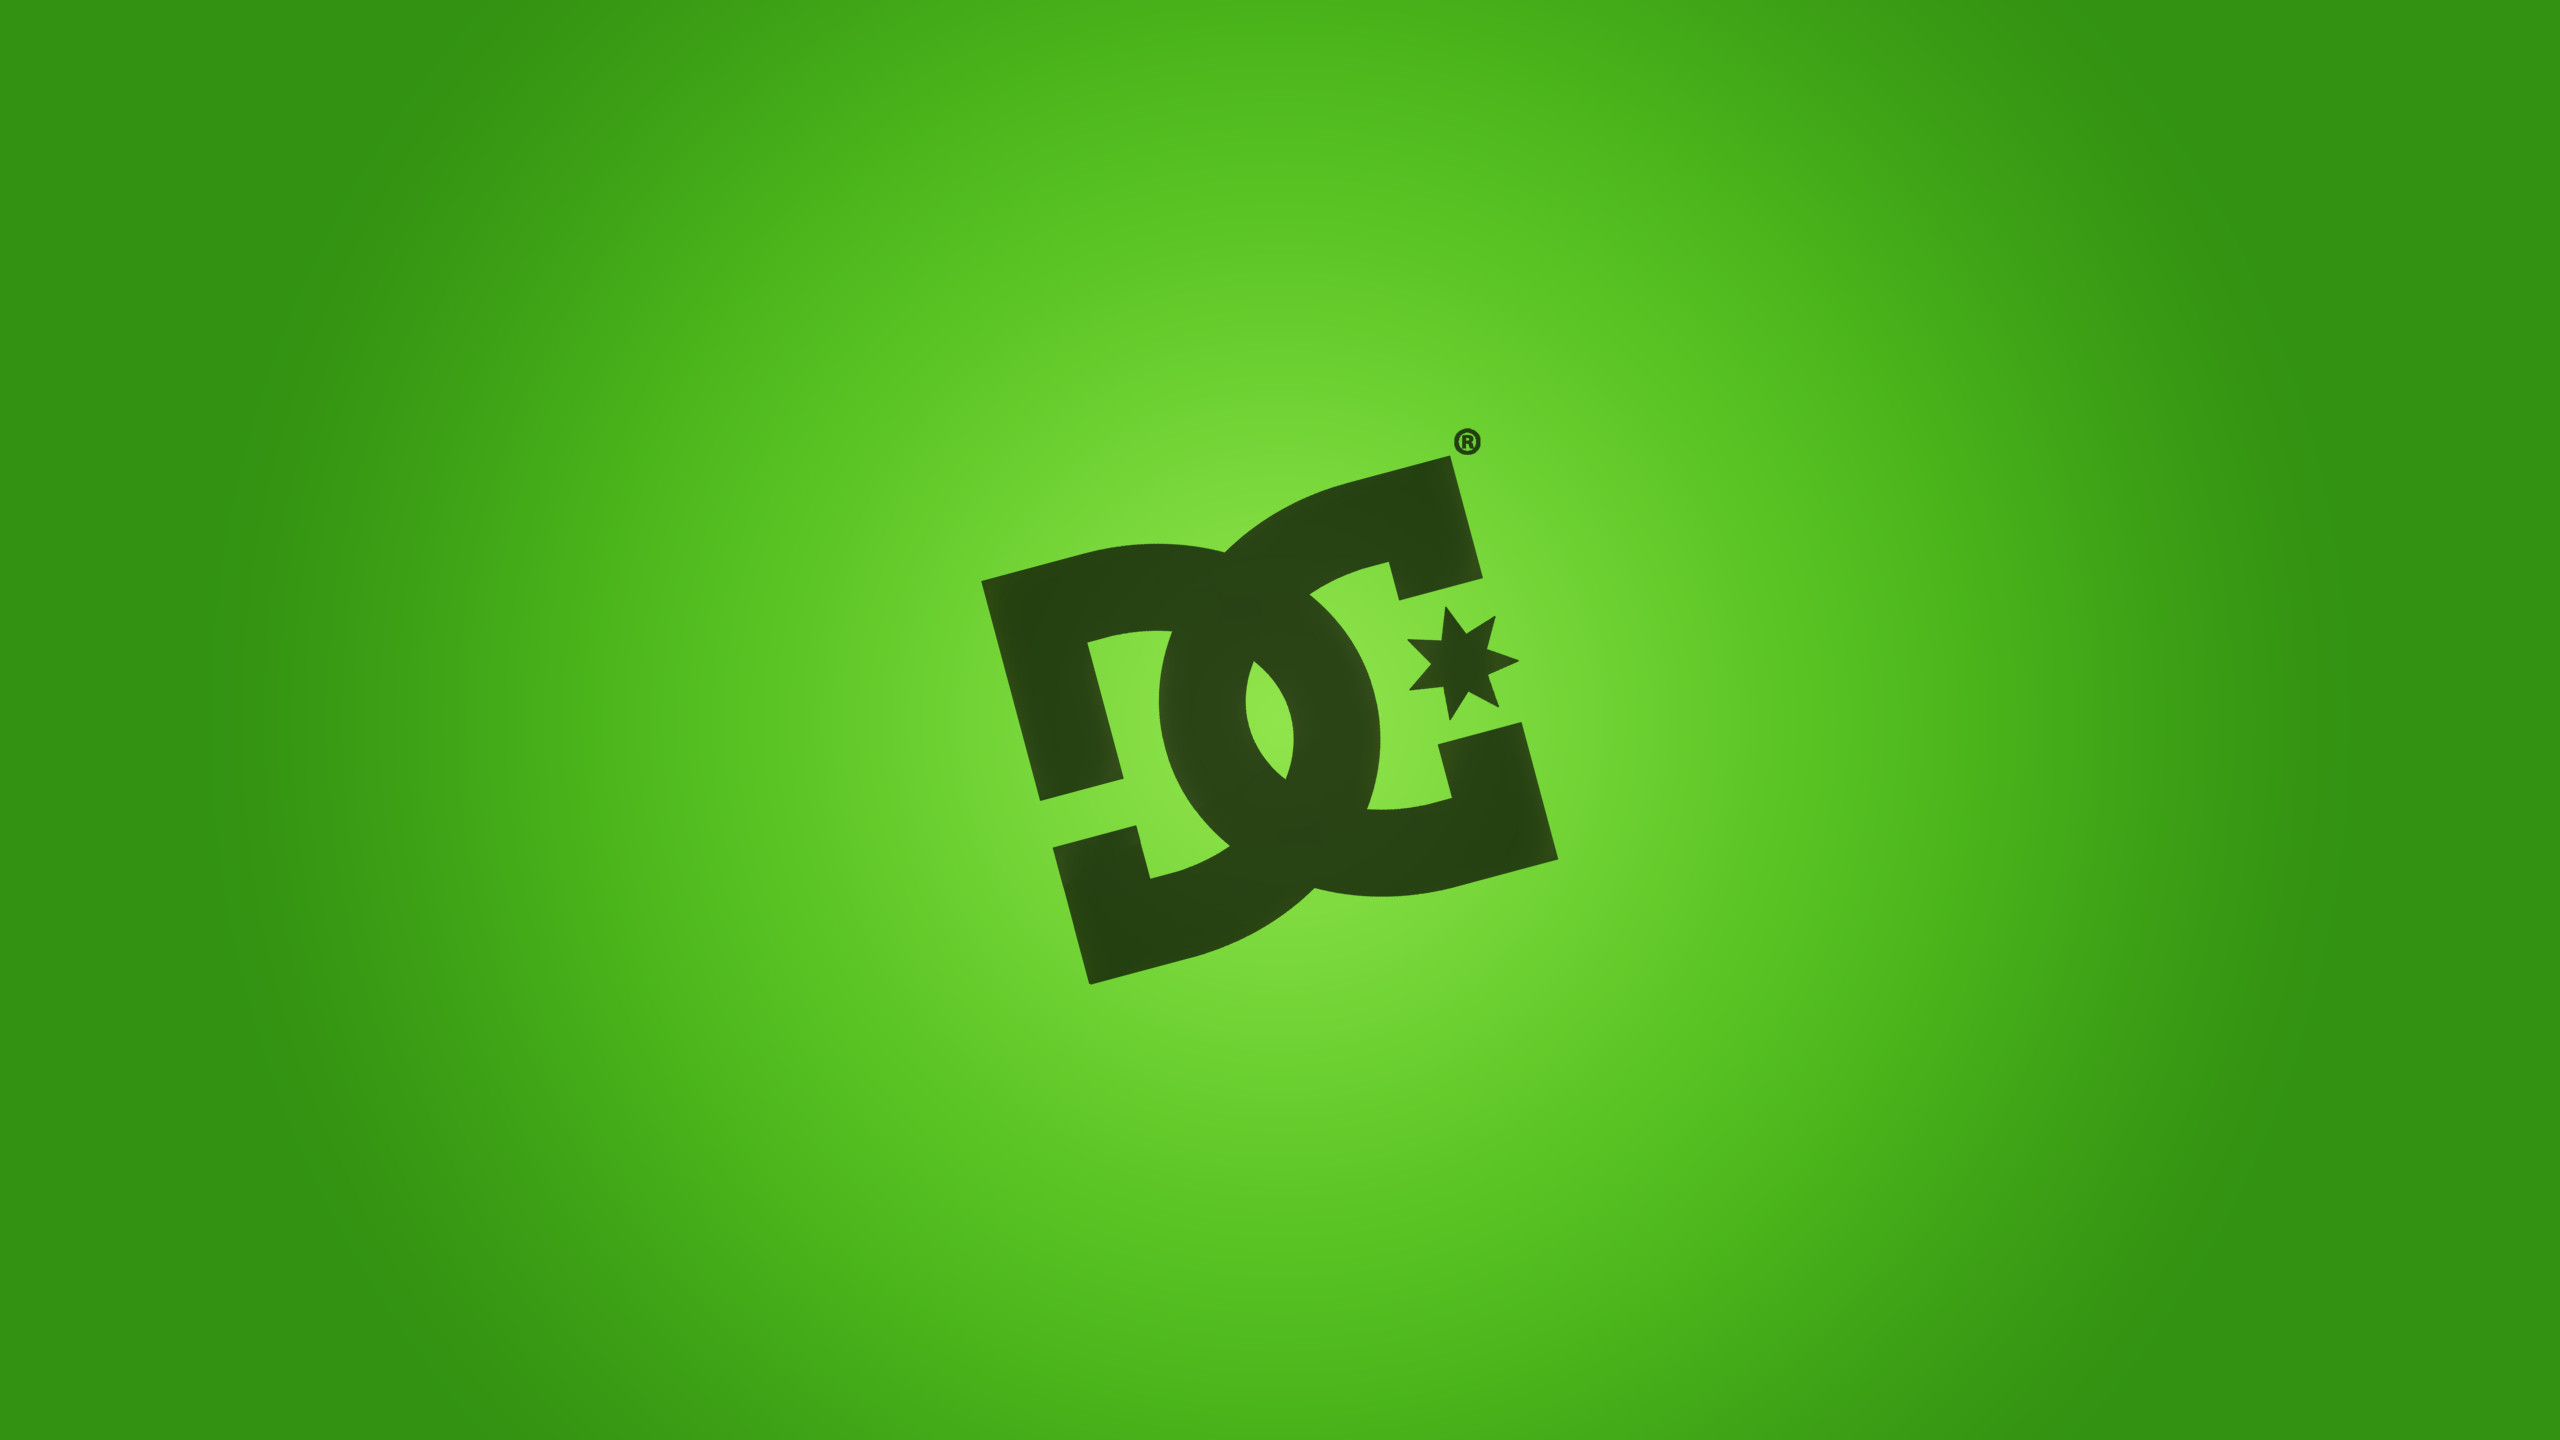 Res: 2560x1440, DC Shoes Wallpapers 9 - 2560 X 1440